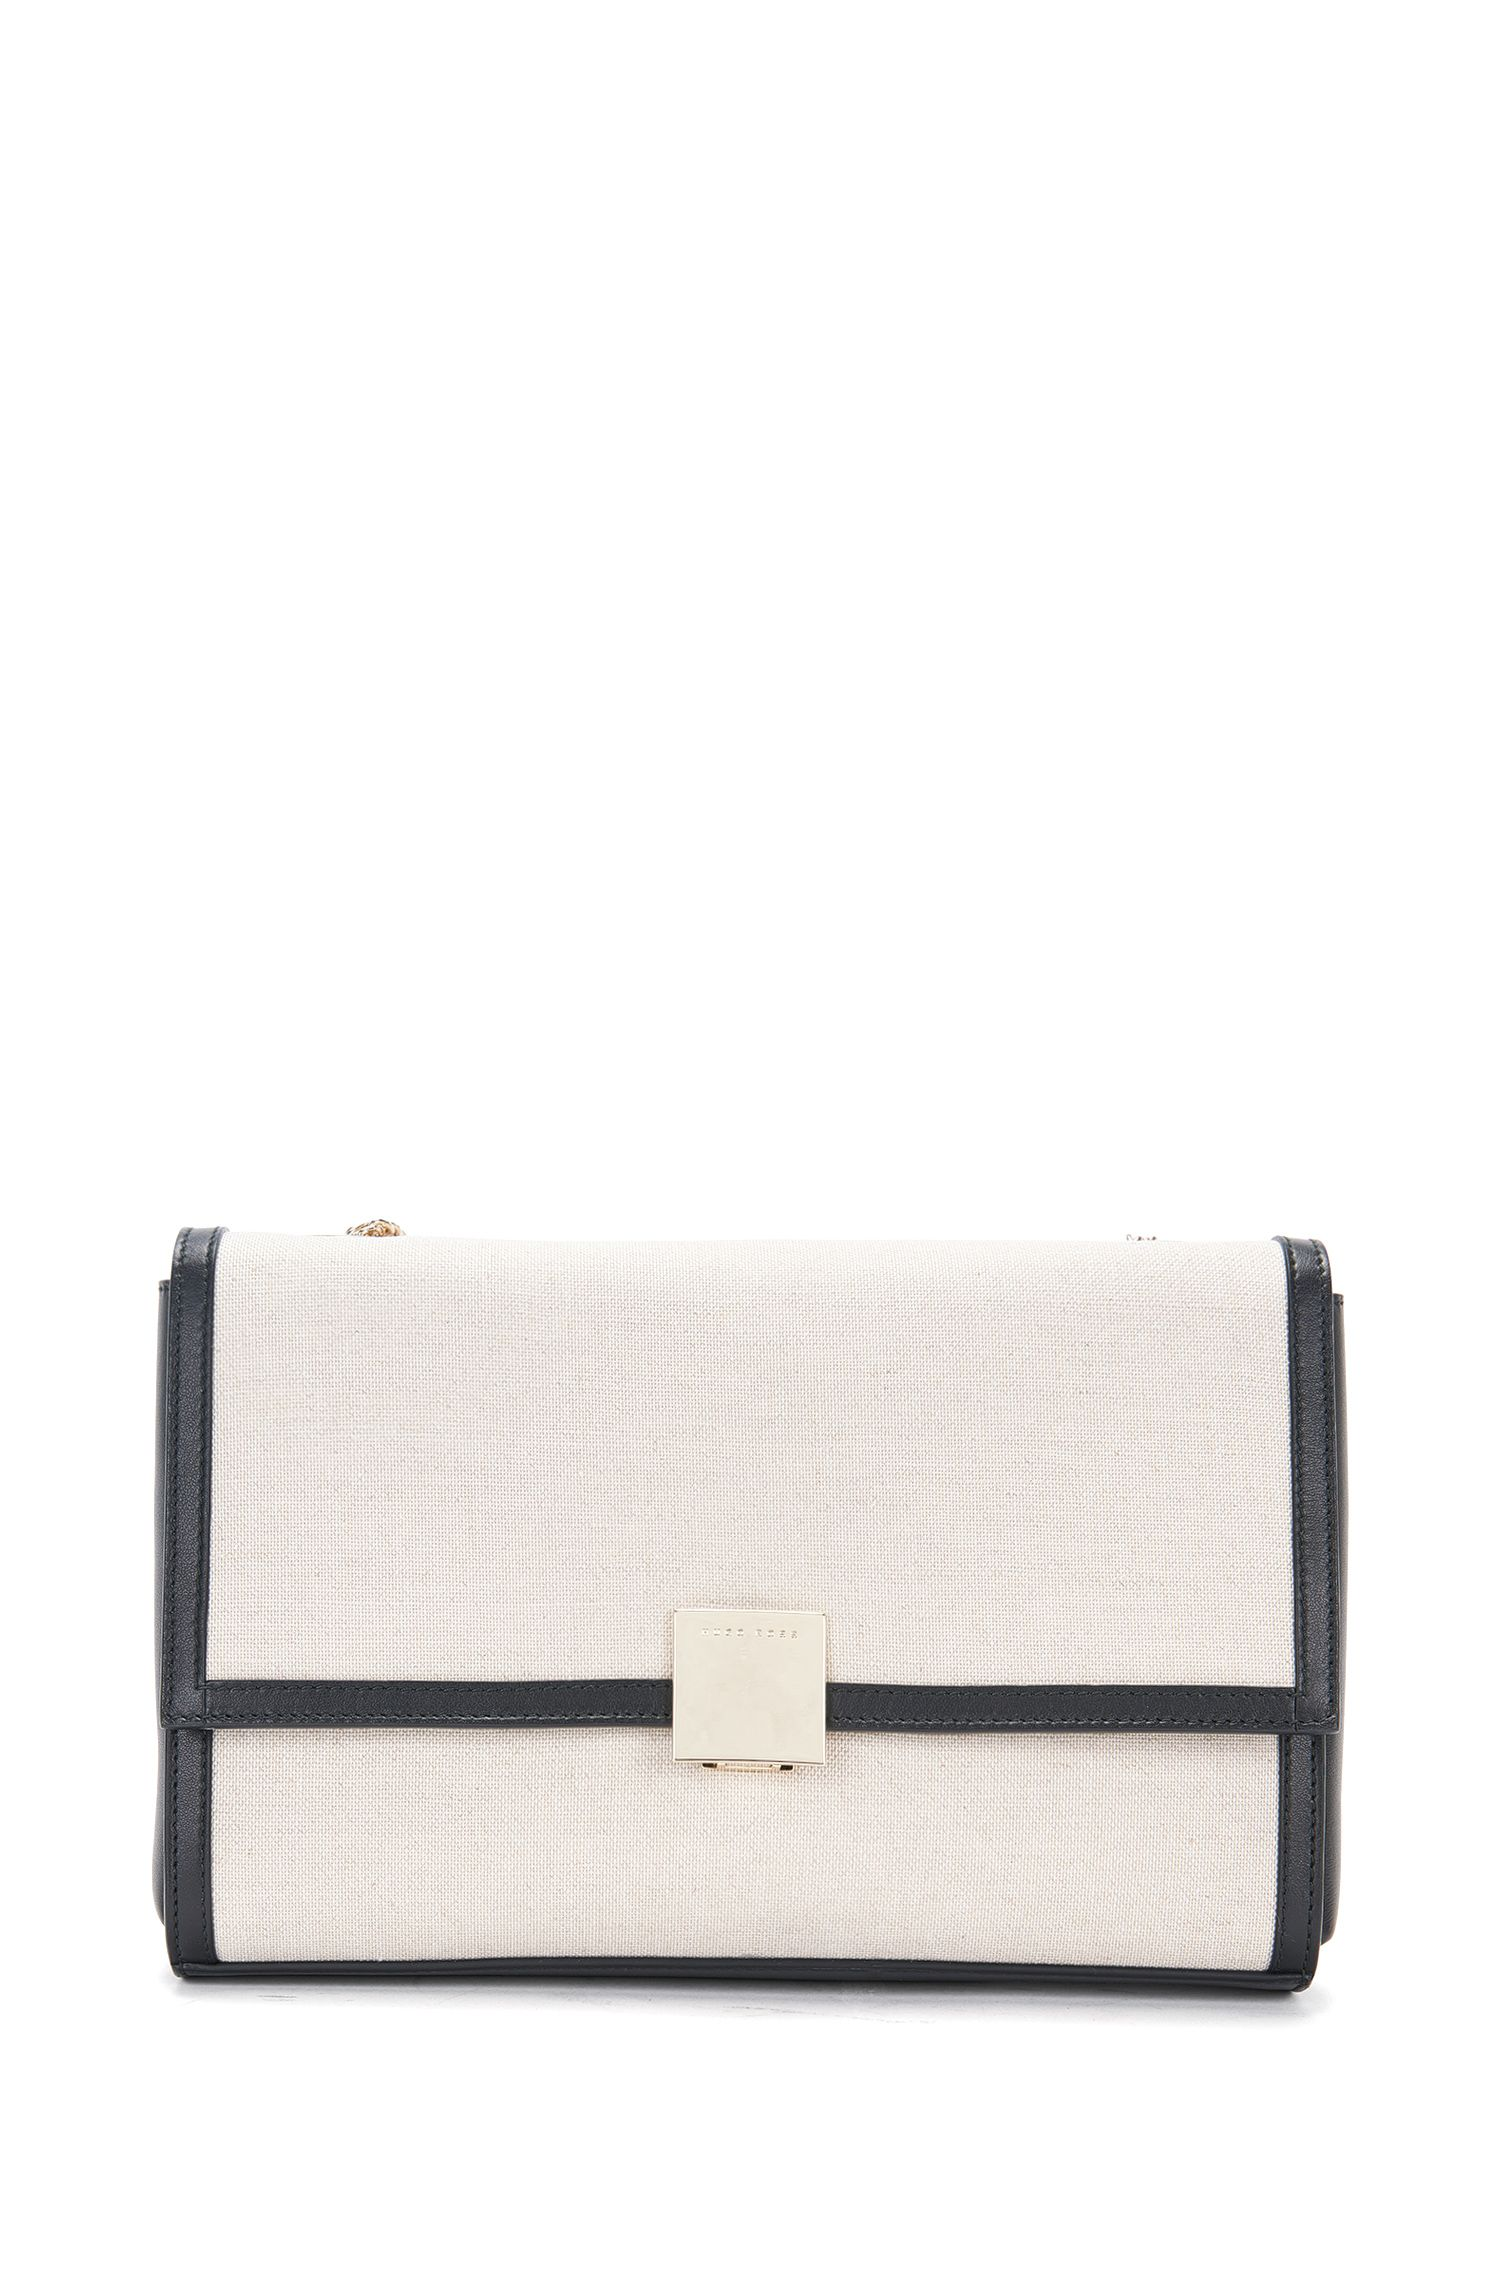 'Munich Flap SC' | Italian Cotton Linen Leather Handbag, Chain Strap